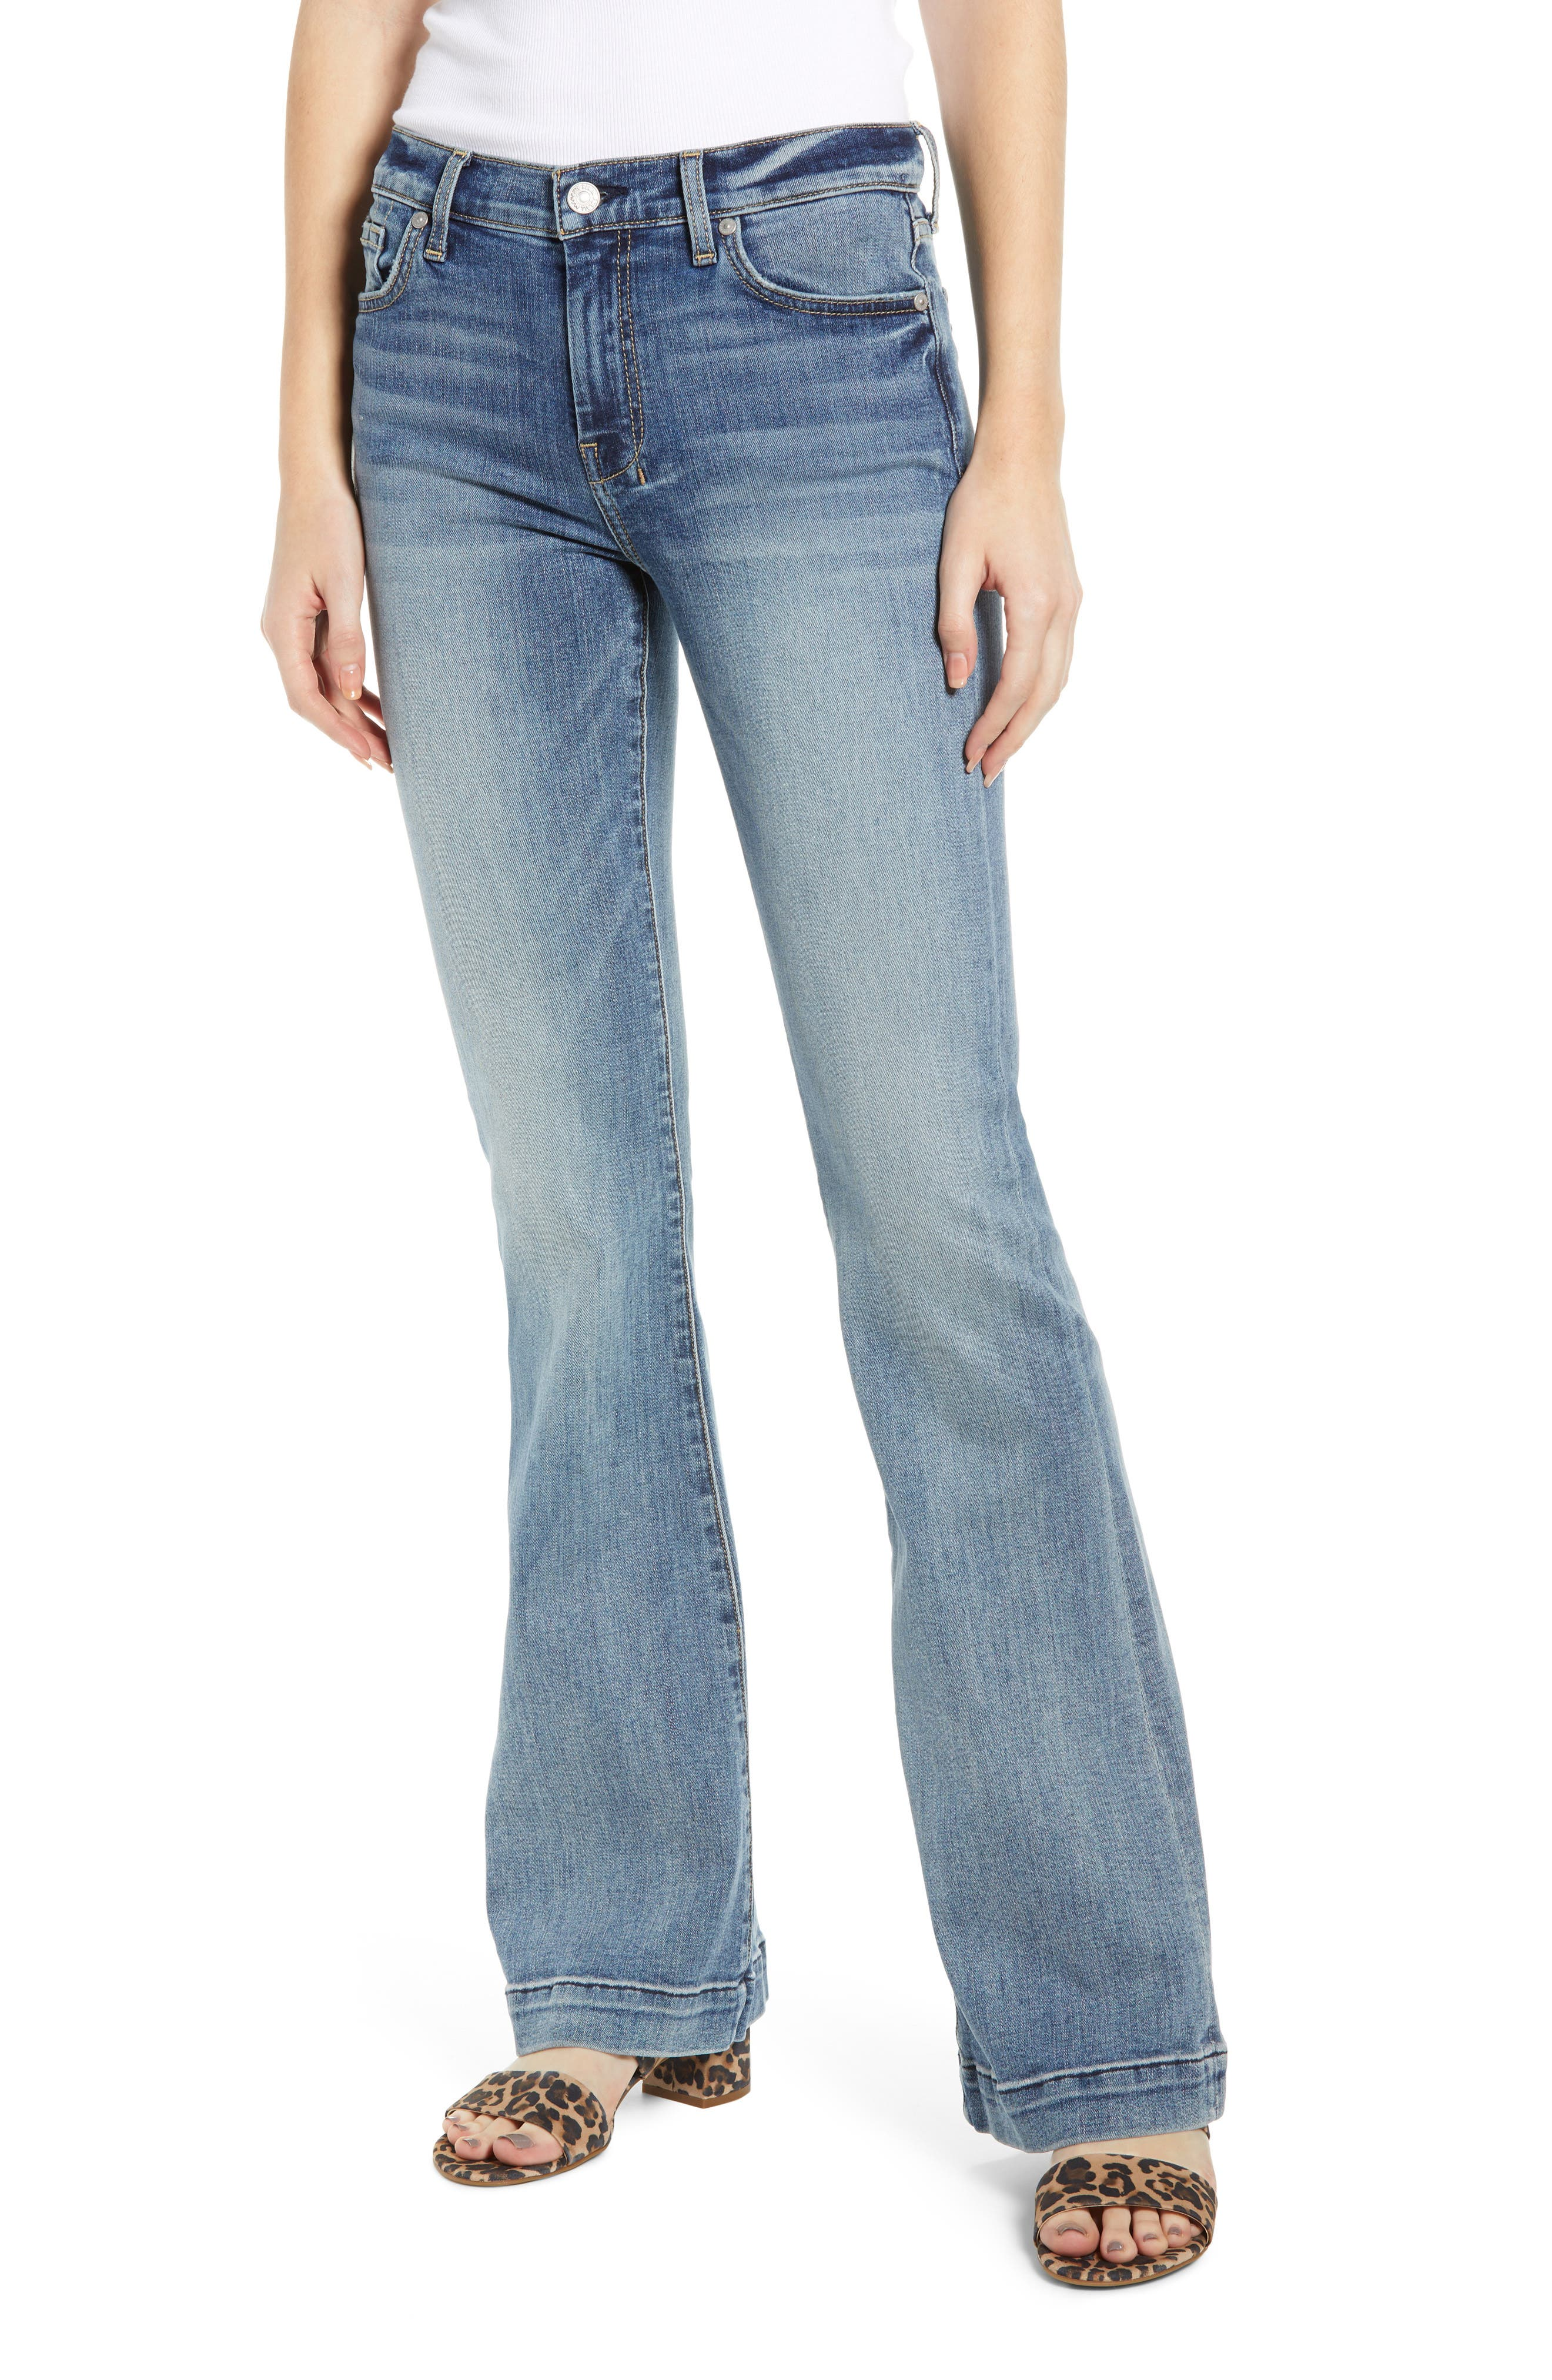 7 FOR ALL MANKIND<SUP>®</SUP>, Dojo Wide Leg Jeans, Main thumbnail 1, color, BAIR AUTHENTIC FORTUNE